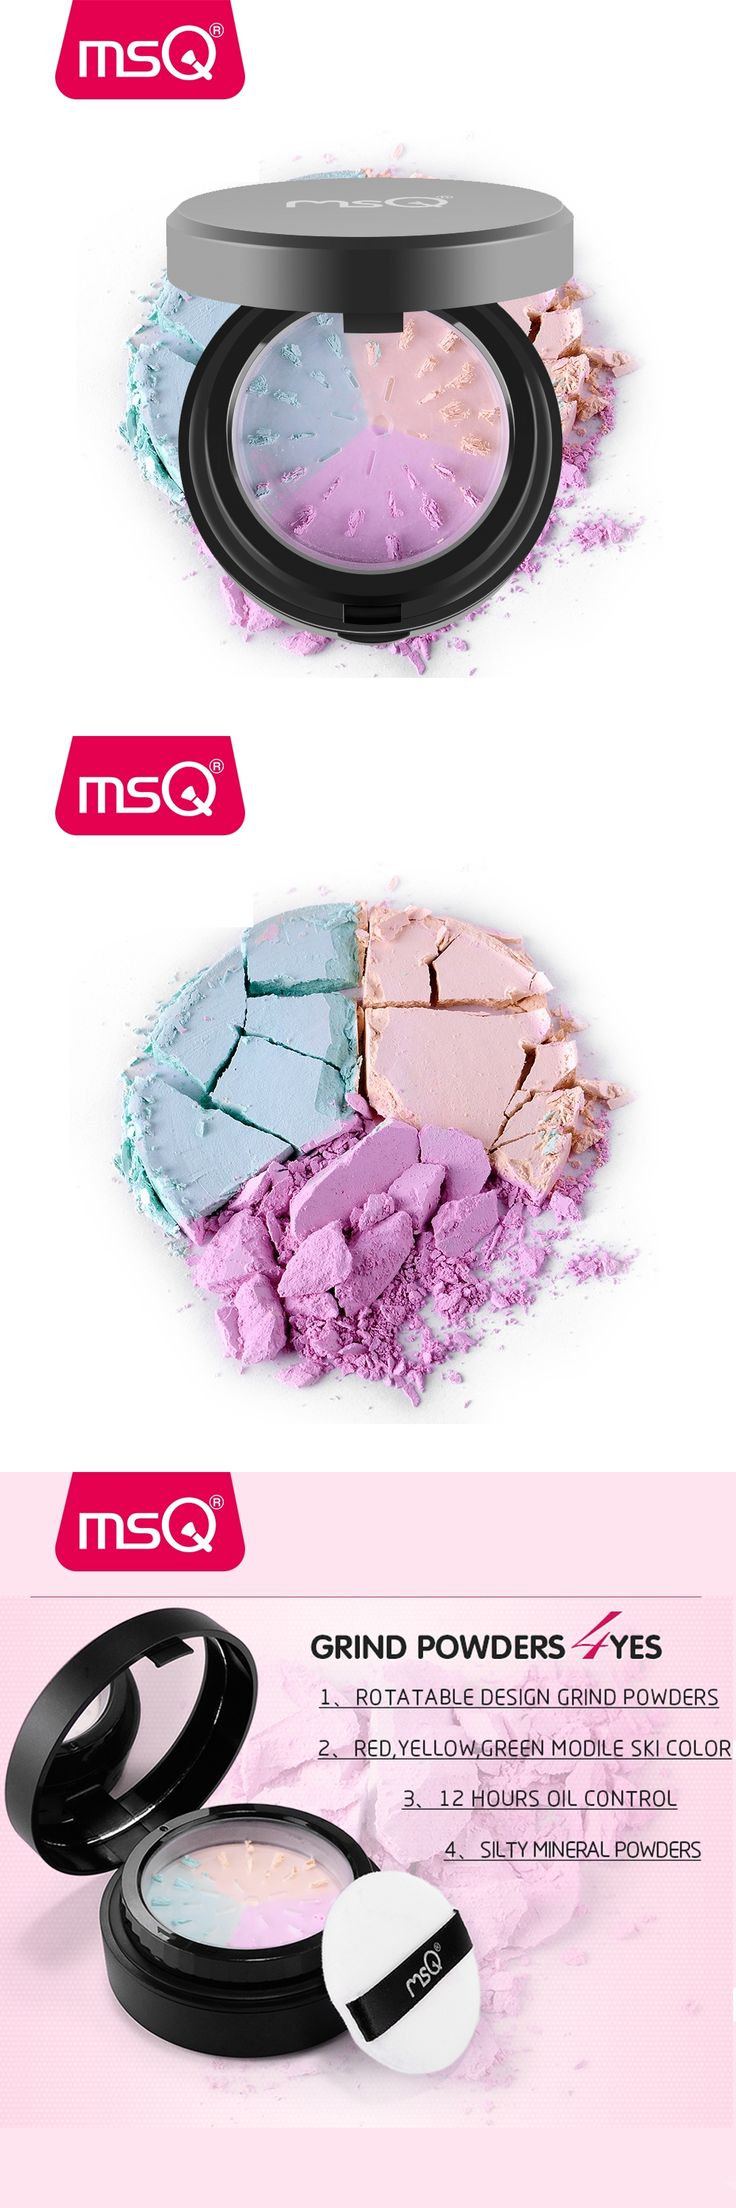 MSQ Make Up Primer Loose Powder With Puff Setting Powder Poudre Libre Oil-control Finishing Powder Matte Cosmetic Beauty Tool